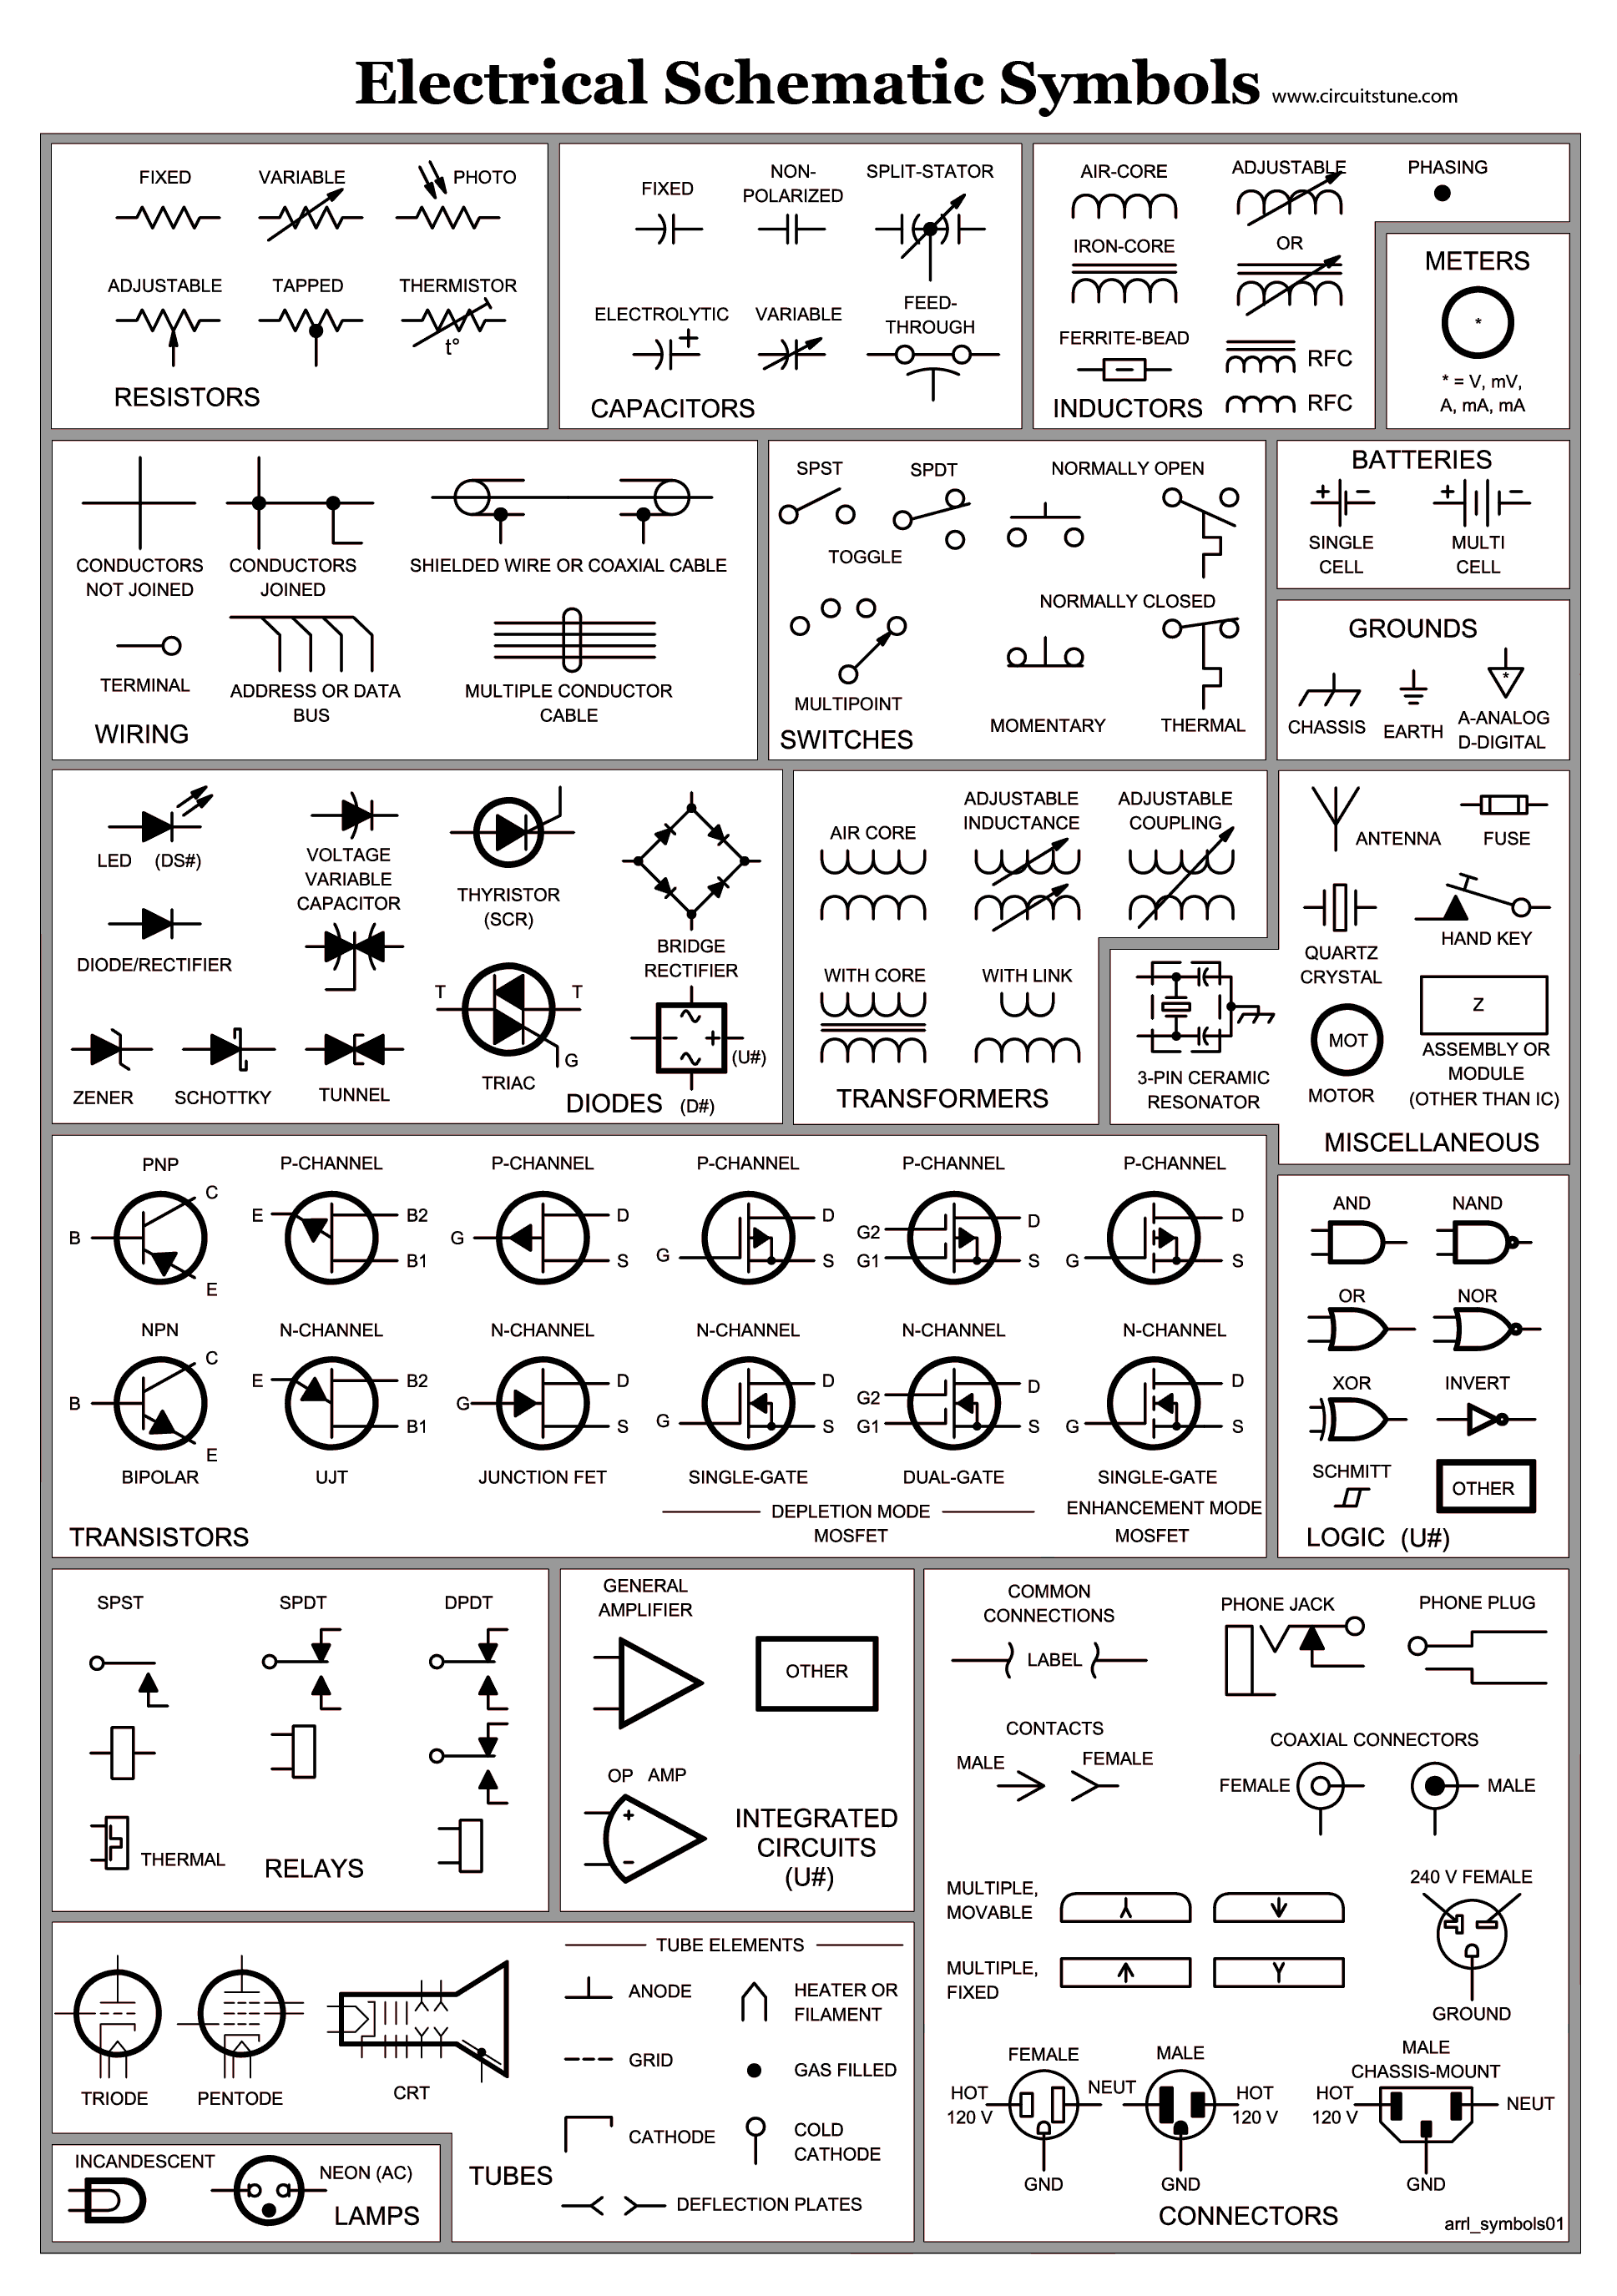 Basic Wiring Symbols - Wiring Diagram Filter